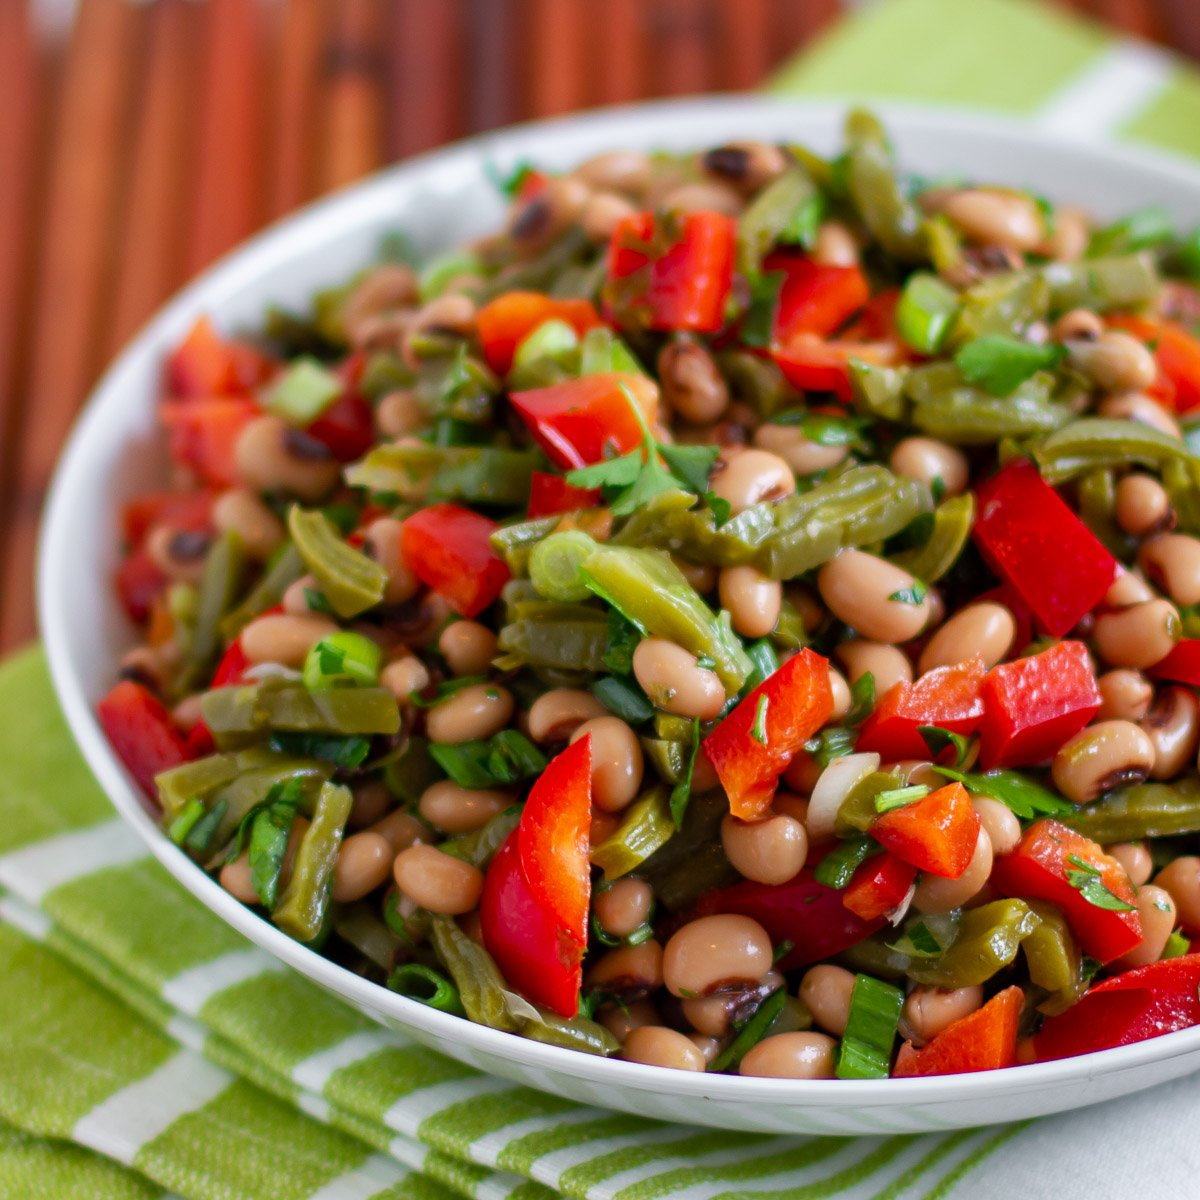 A bright and fresh Mexican salad made with nopalito cactus, black eyed peas, red pepper, green onions, cilantro, lemon juice and olive oil.